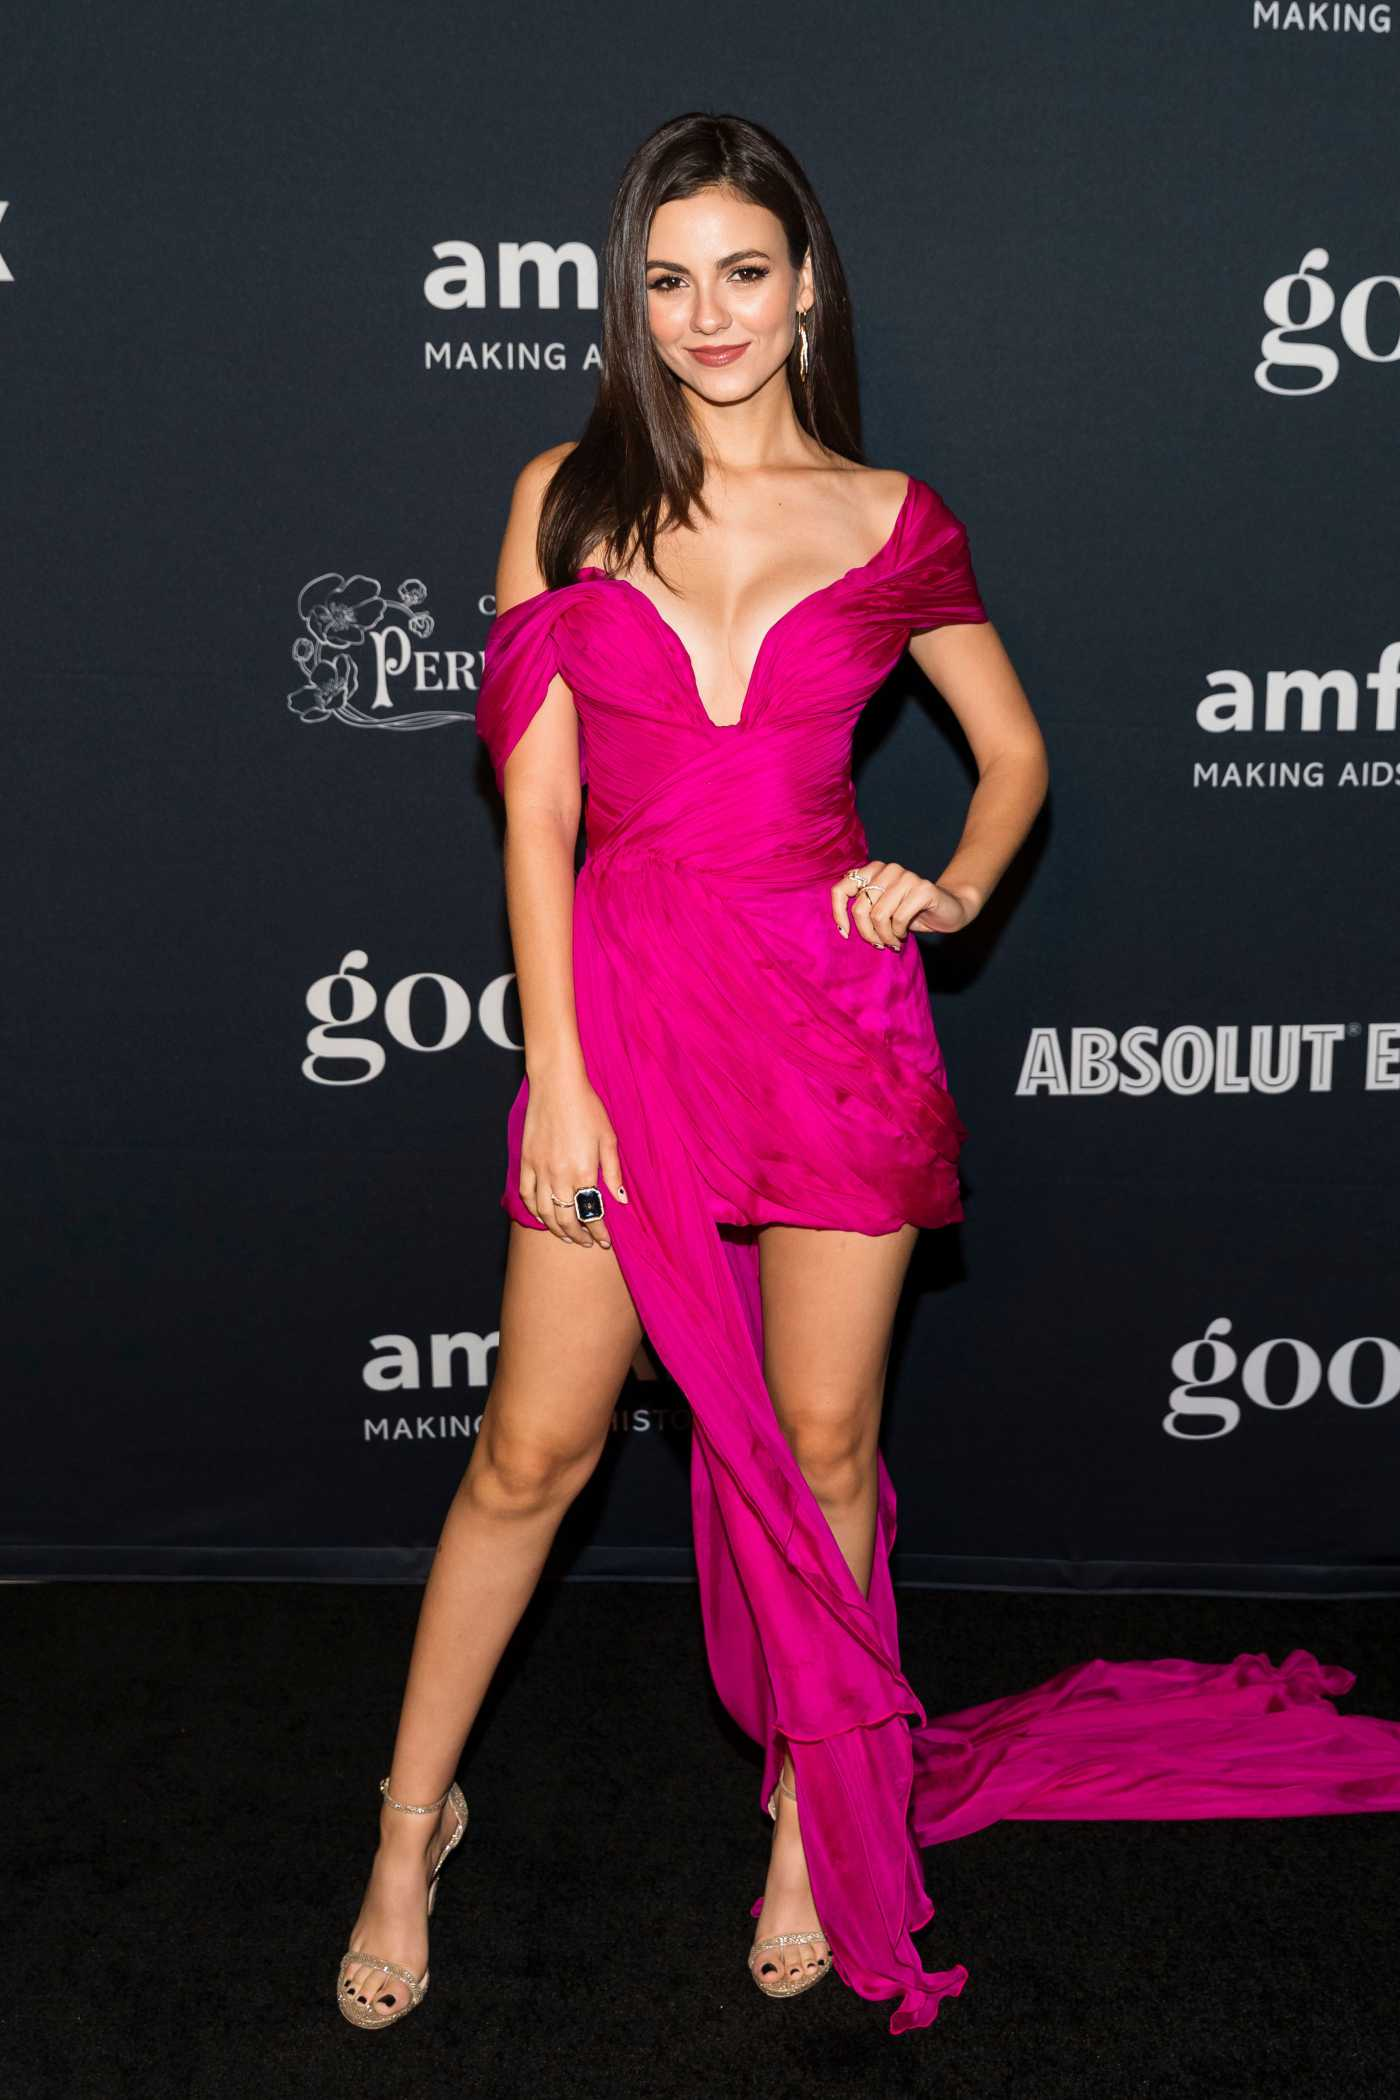 Victoria Justice Attends amfAR Charity Poker Tournament and Game Night in San Francisco 11/15/2019